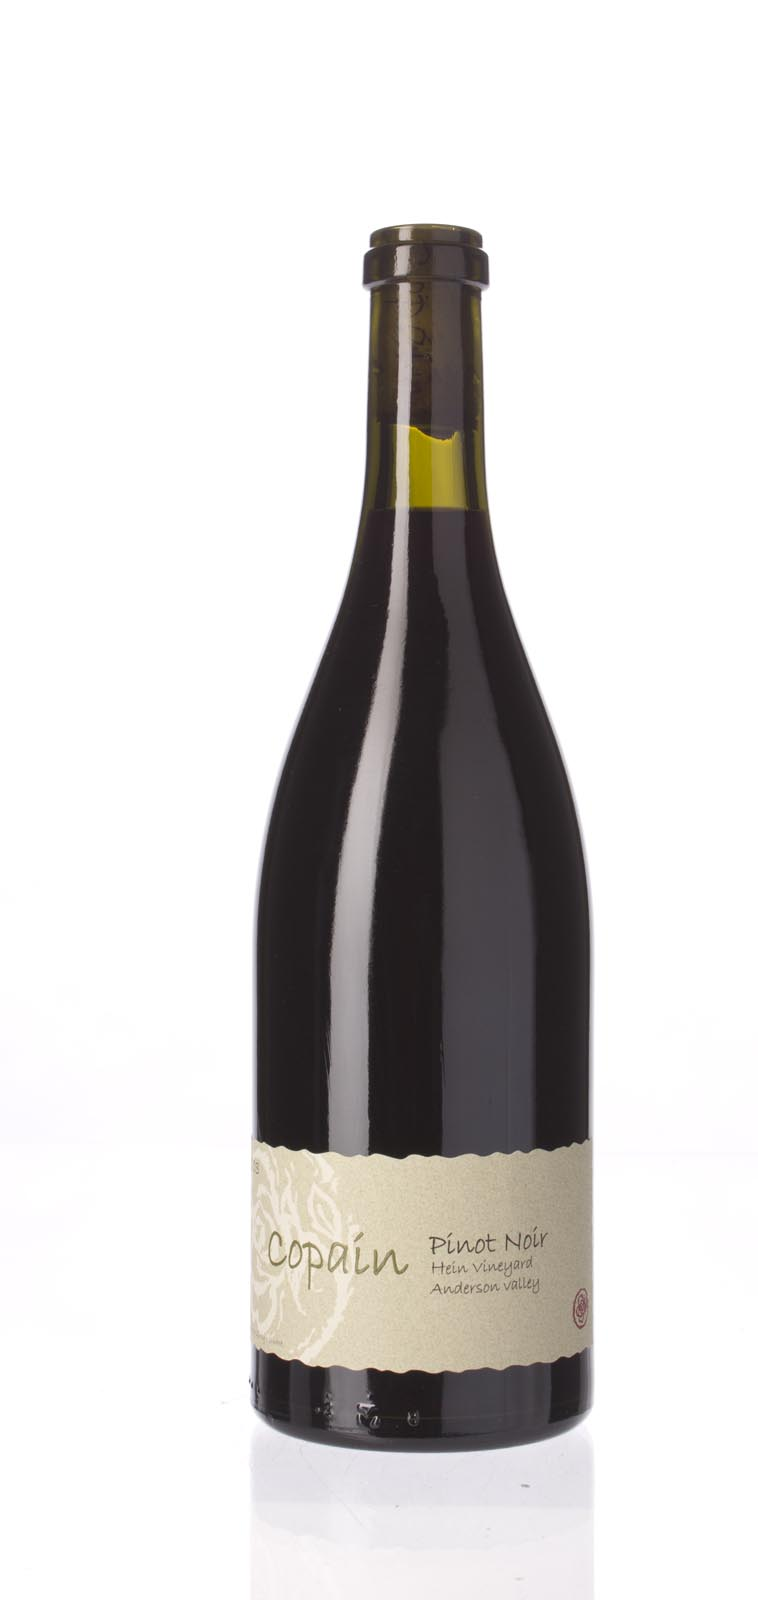 Copain Wines Pinot Noir Hein Vineyard 2003, 750mL () from The BPW - Merchants of rare and fine wines.